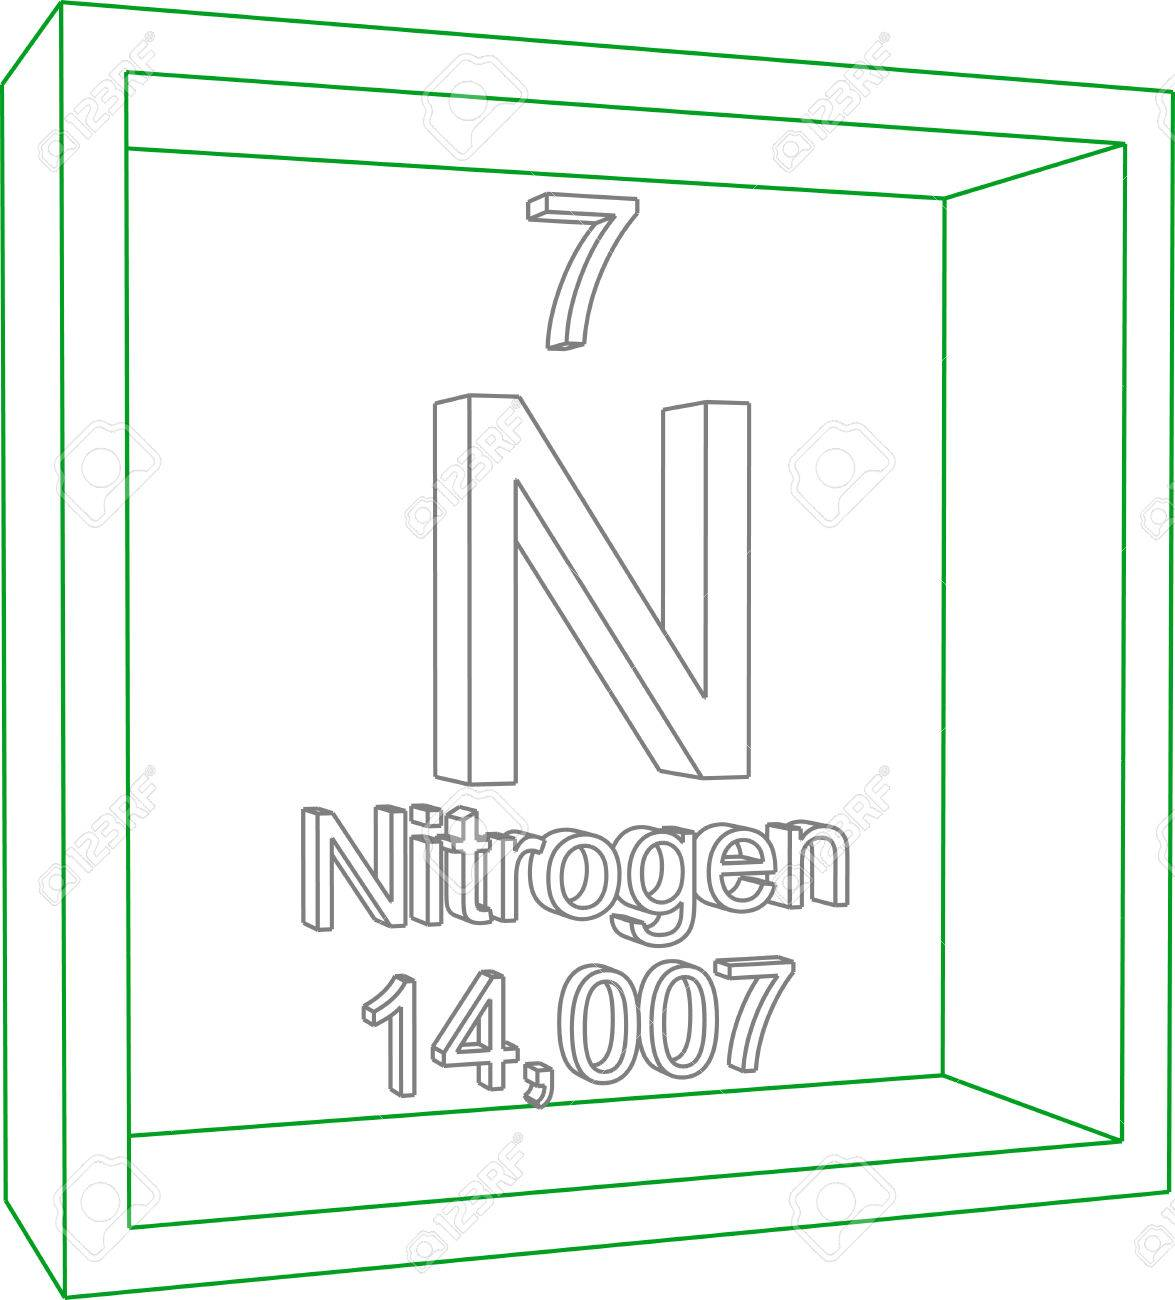 Periodic table of elements nitrogen royalty free cliparts vectors periodic table of elements nitrogen stock vector 57971389 urtaz Image collections